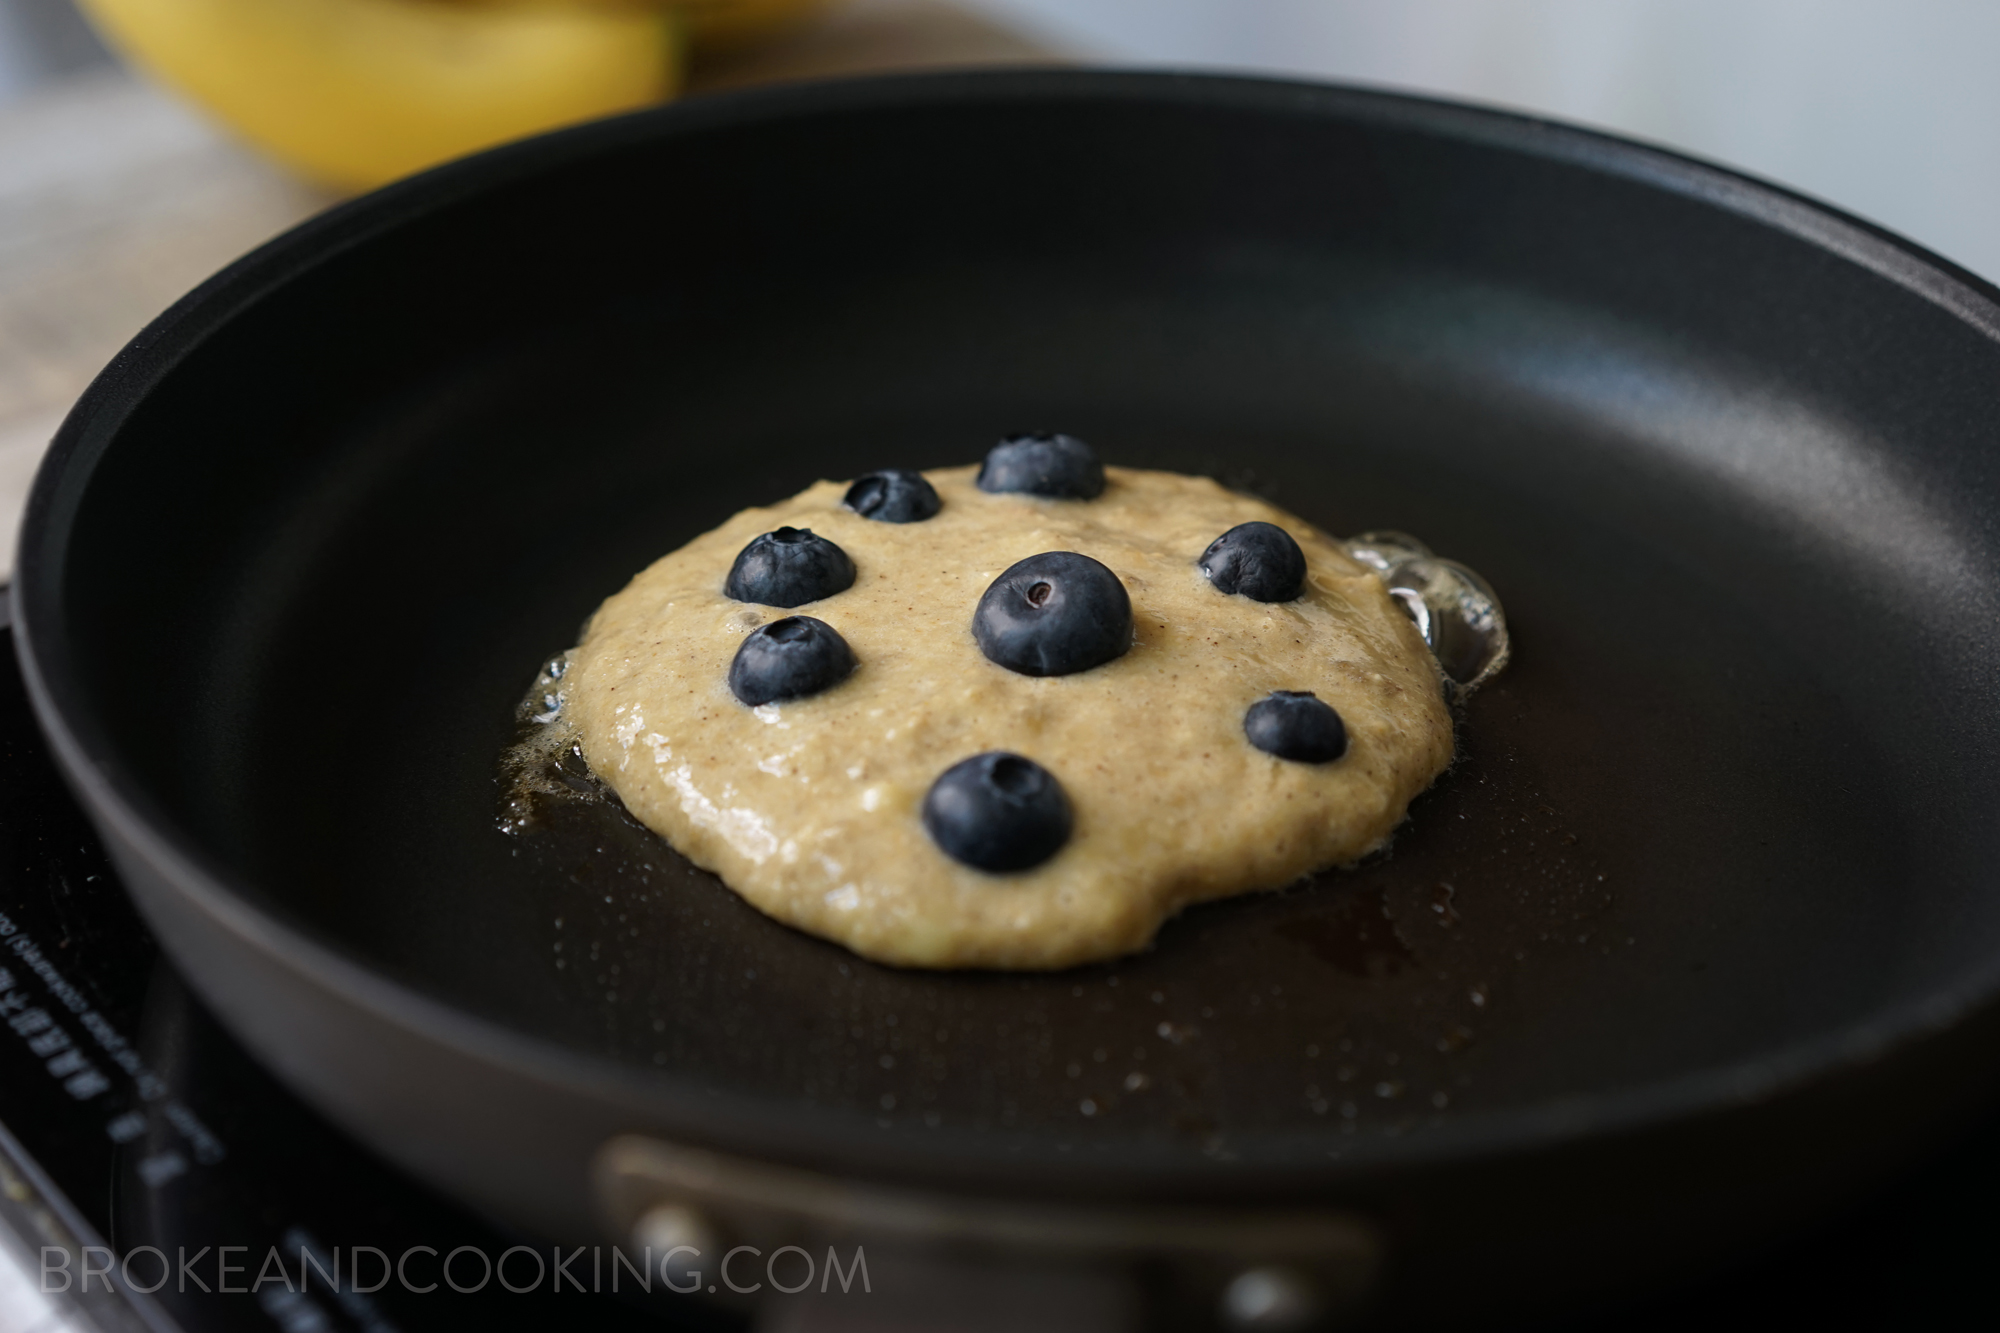 Broke and Cooking Healthy Banana Oat Pancakes 5